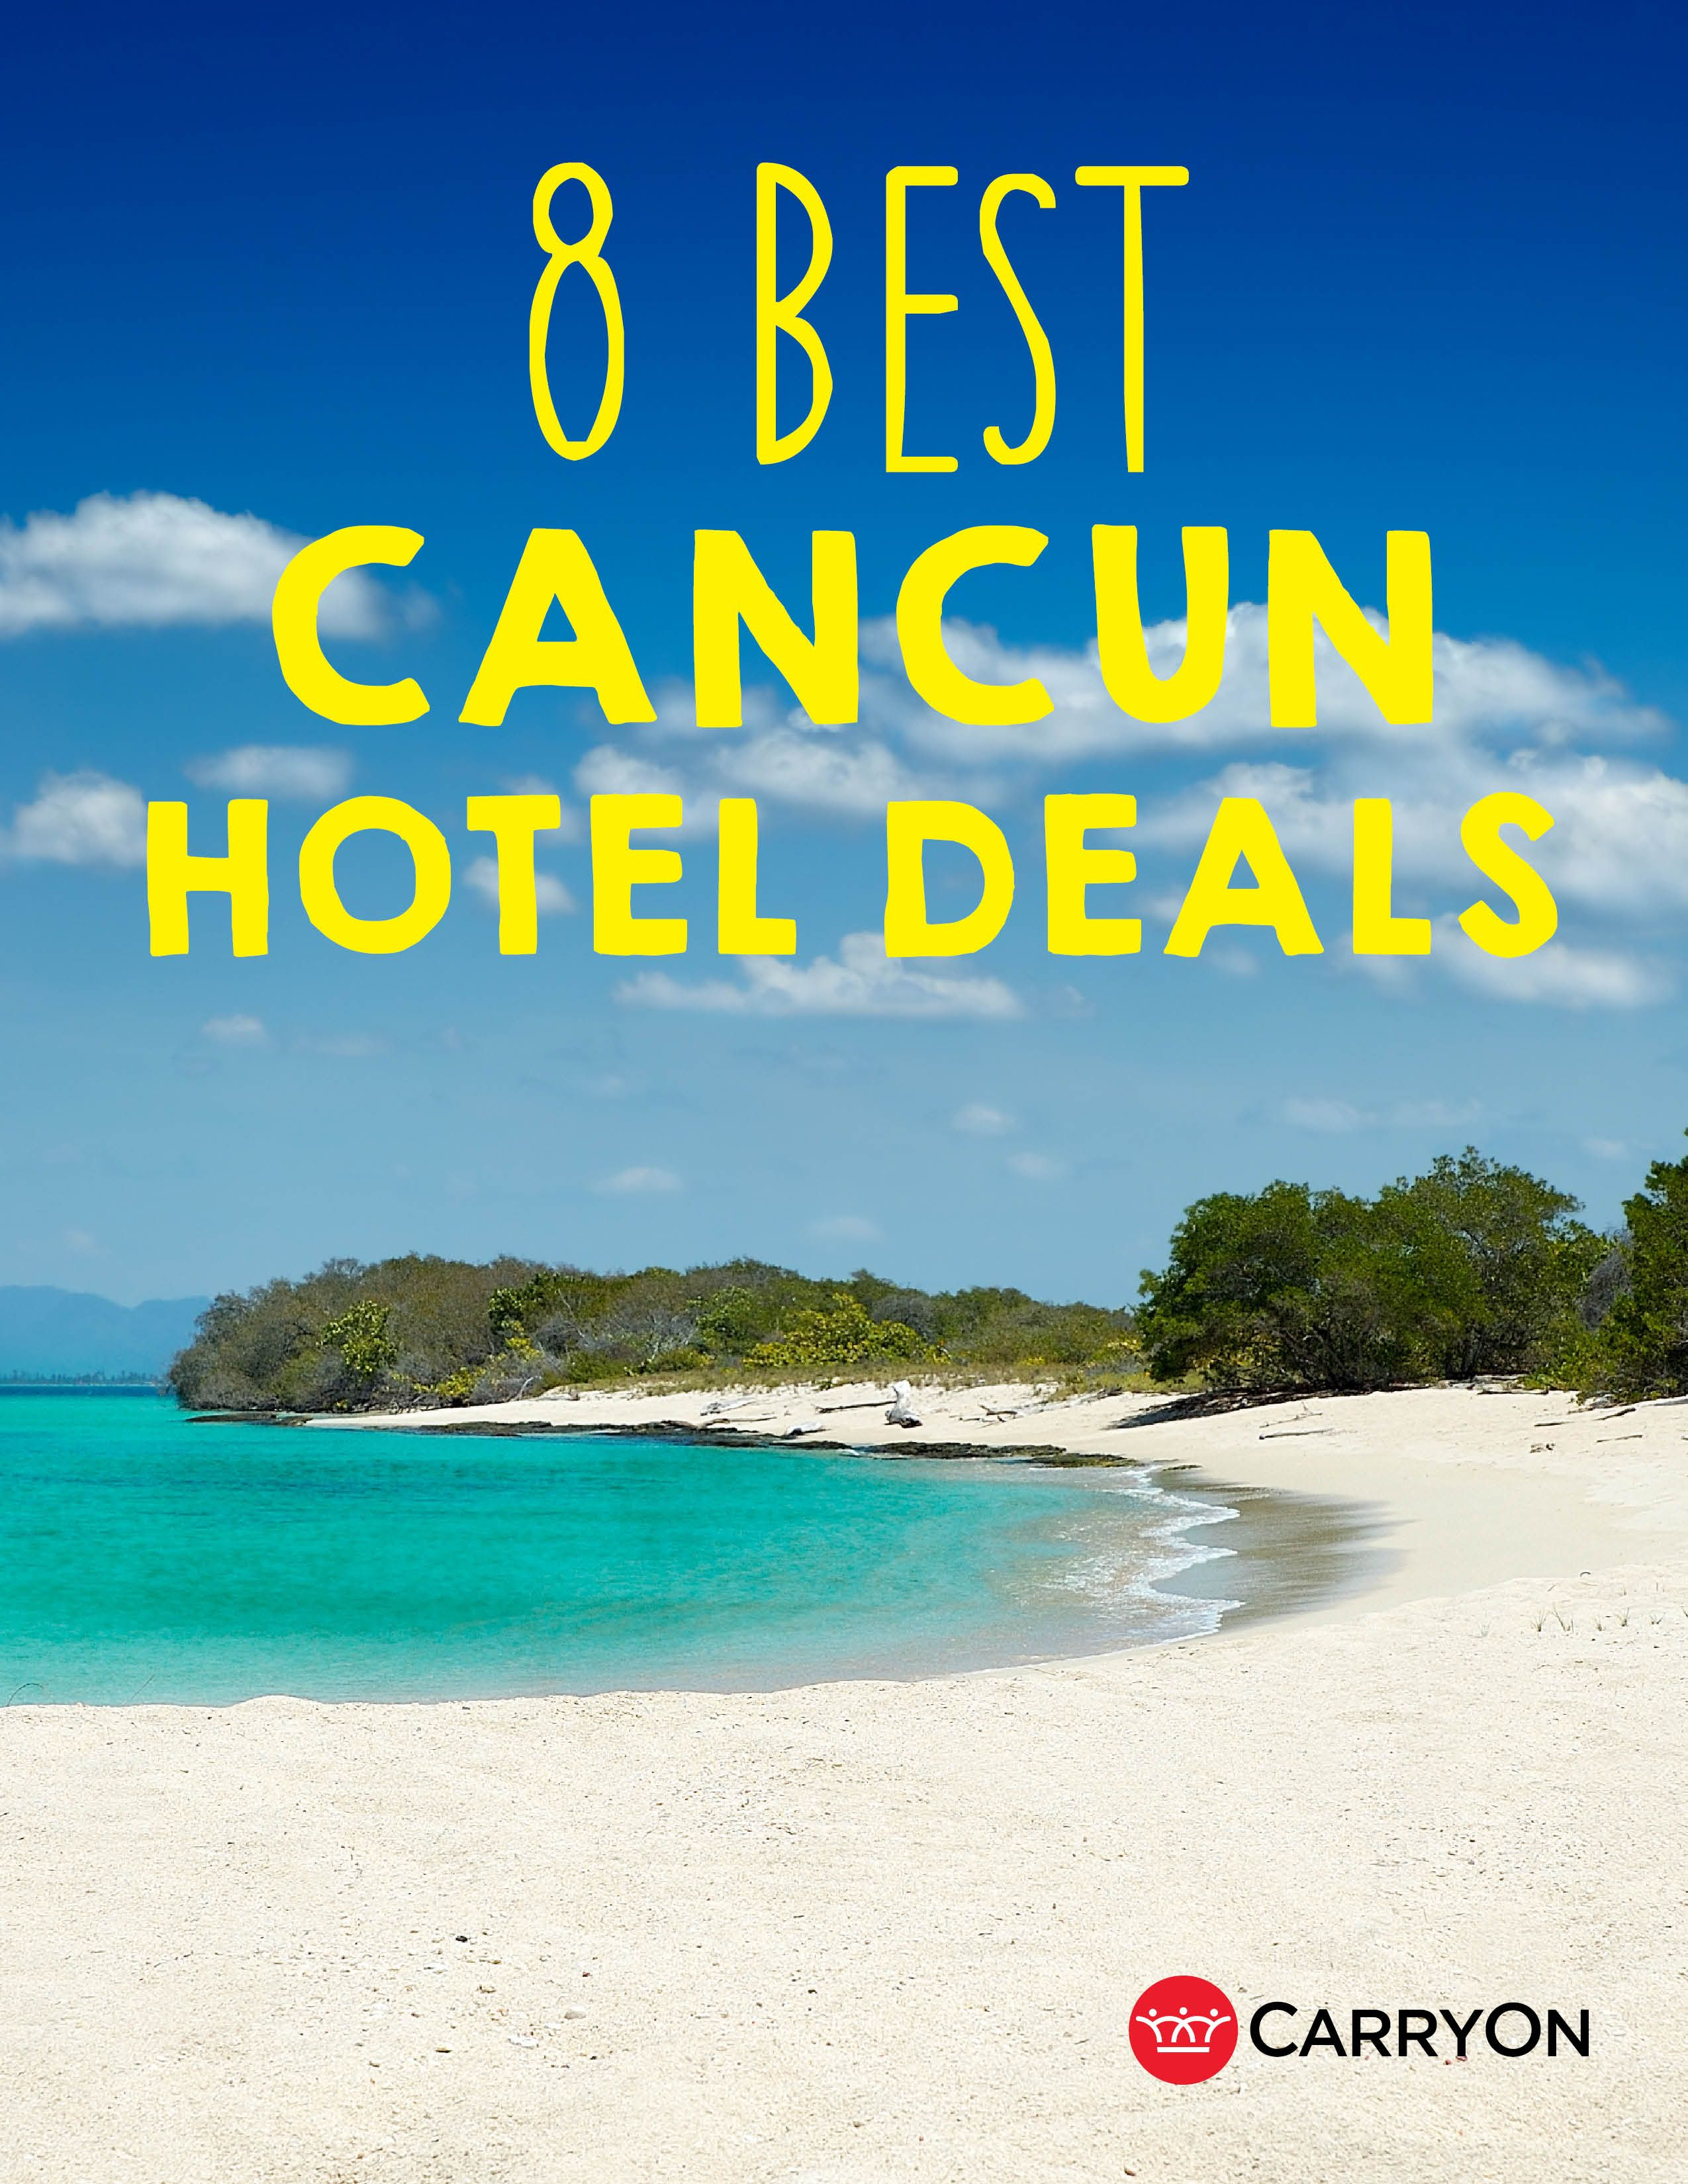 8 Best Cancun Hotel Deals The Great Parnus Resort And Spa All Inclusive Features A